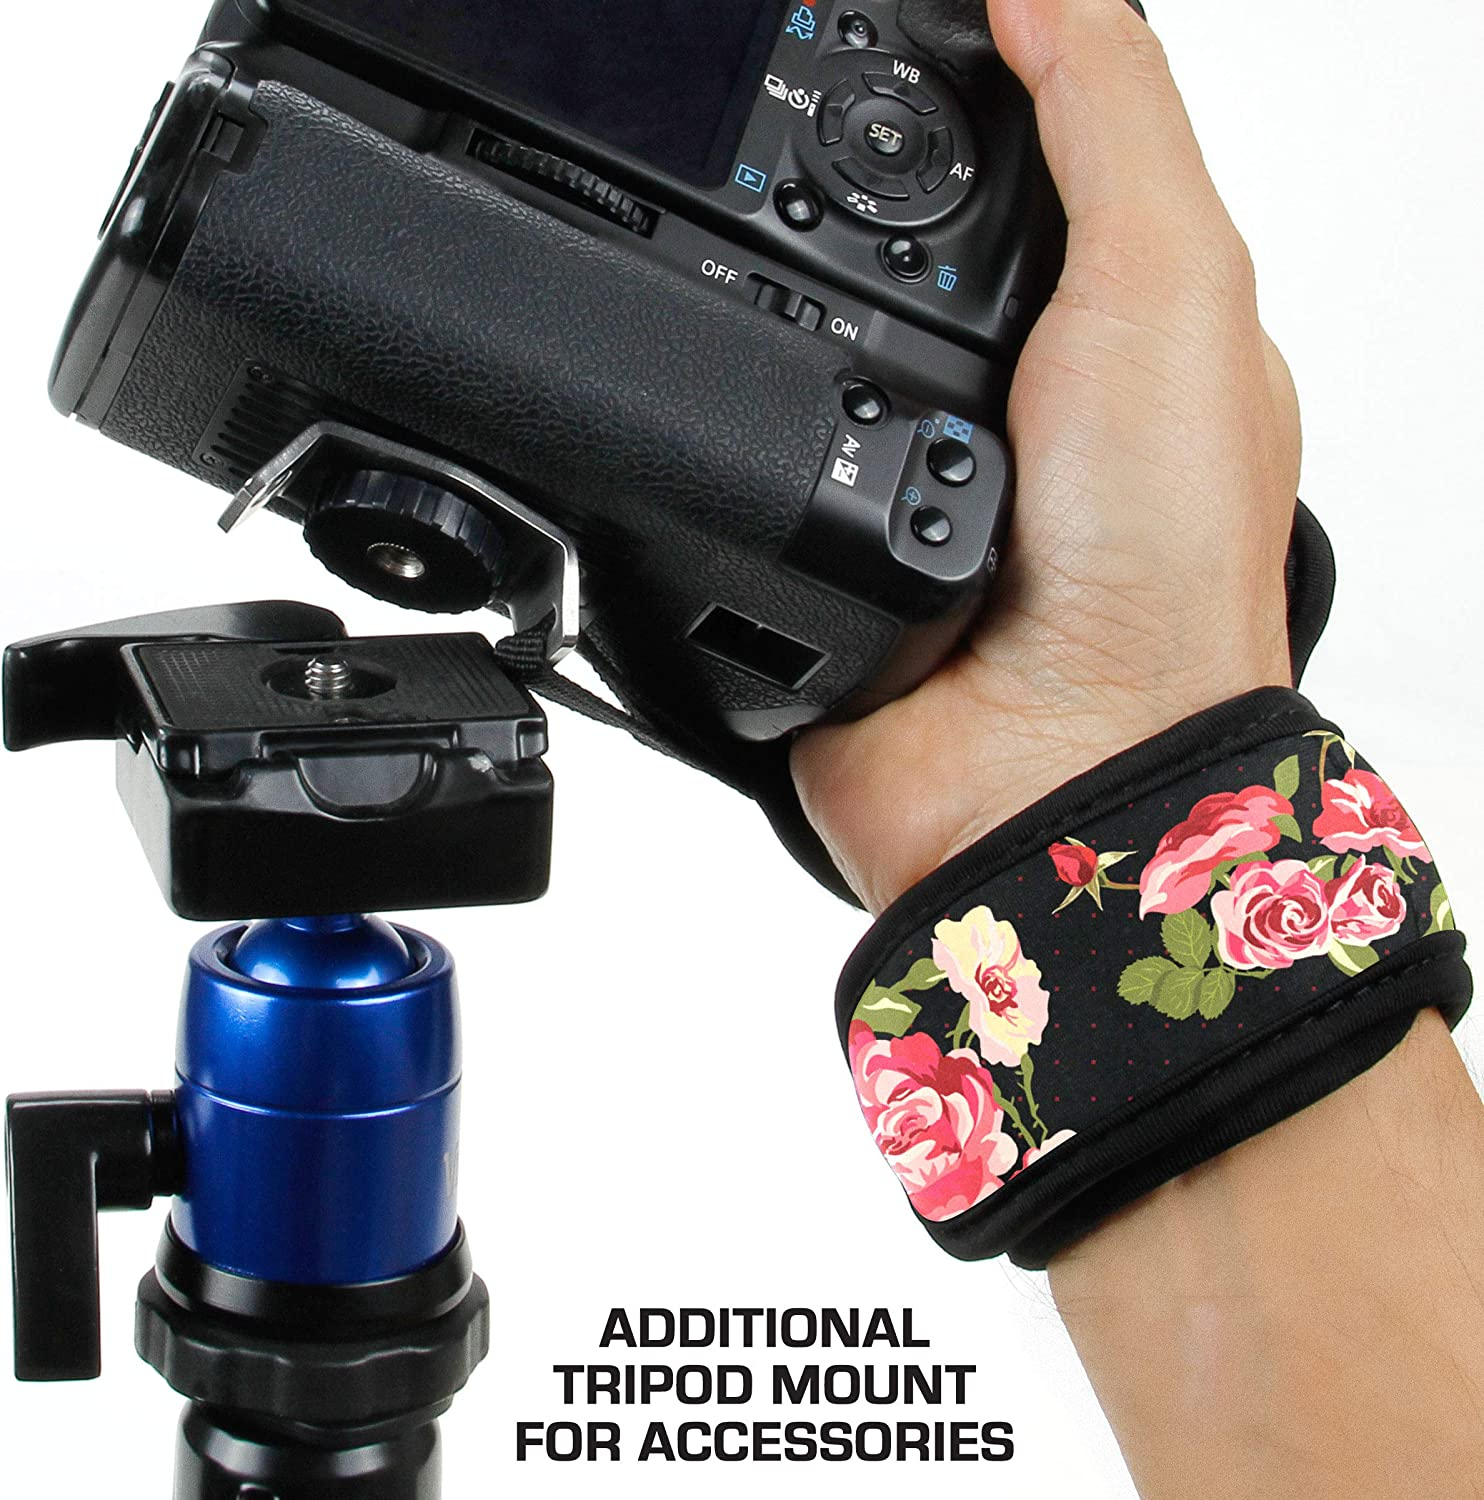 Point /& Shoot Cameras Mirrorless Compatible with Canon Nikon Sony and more DSLR Fujifilm USA GEAR Professional Camera Grip Hand Strap with Galaxy Neoprene Design and Metal Plate